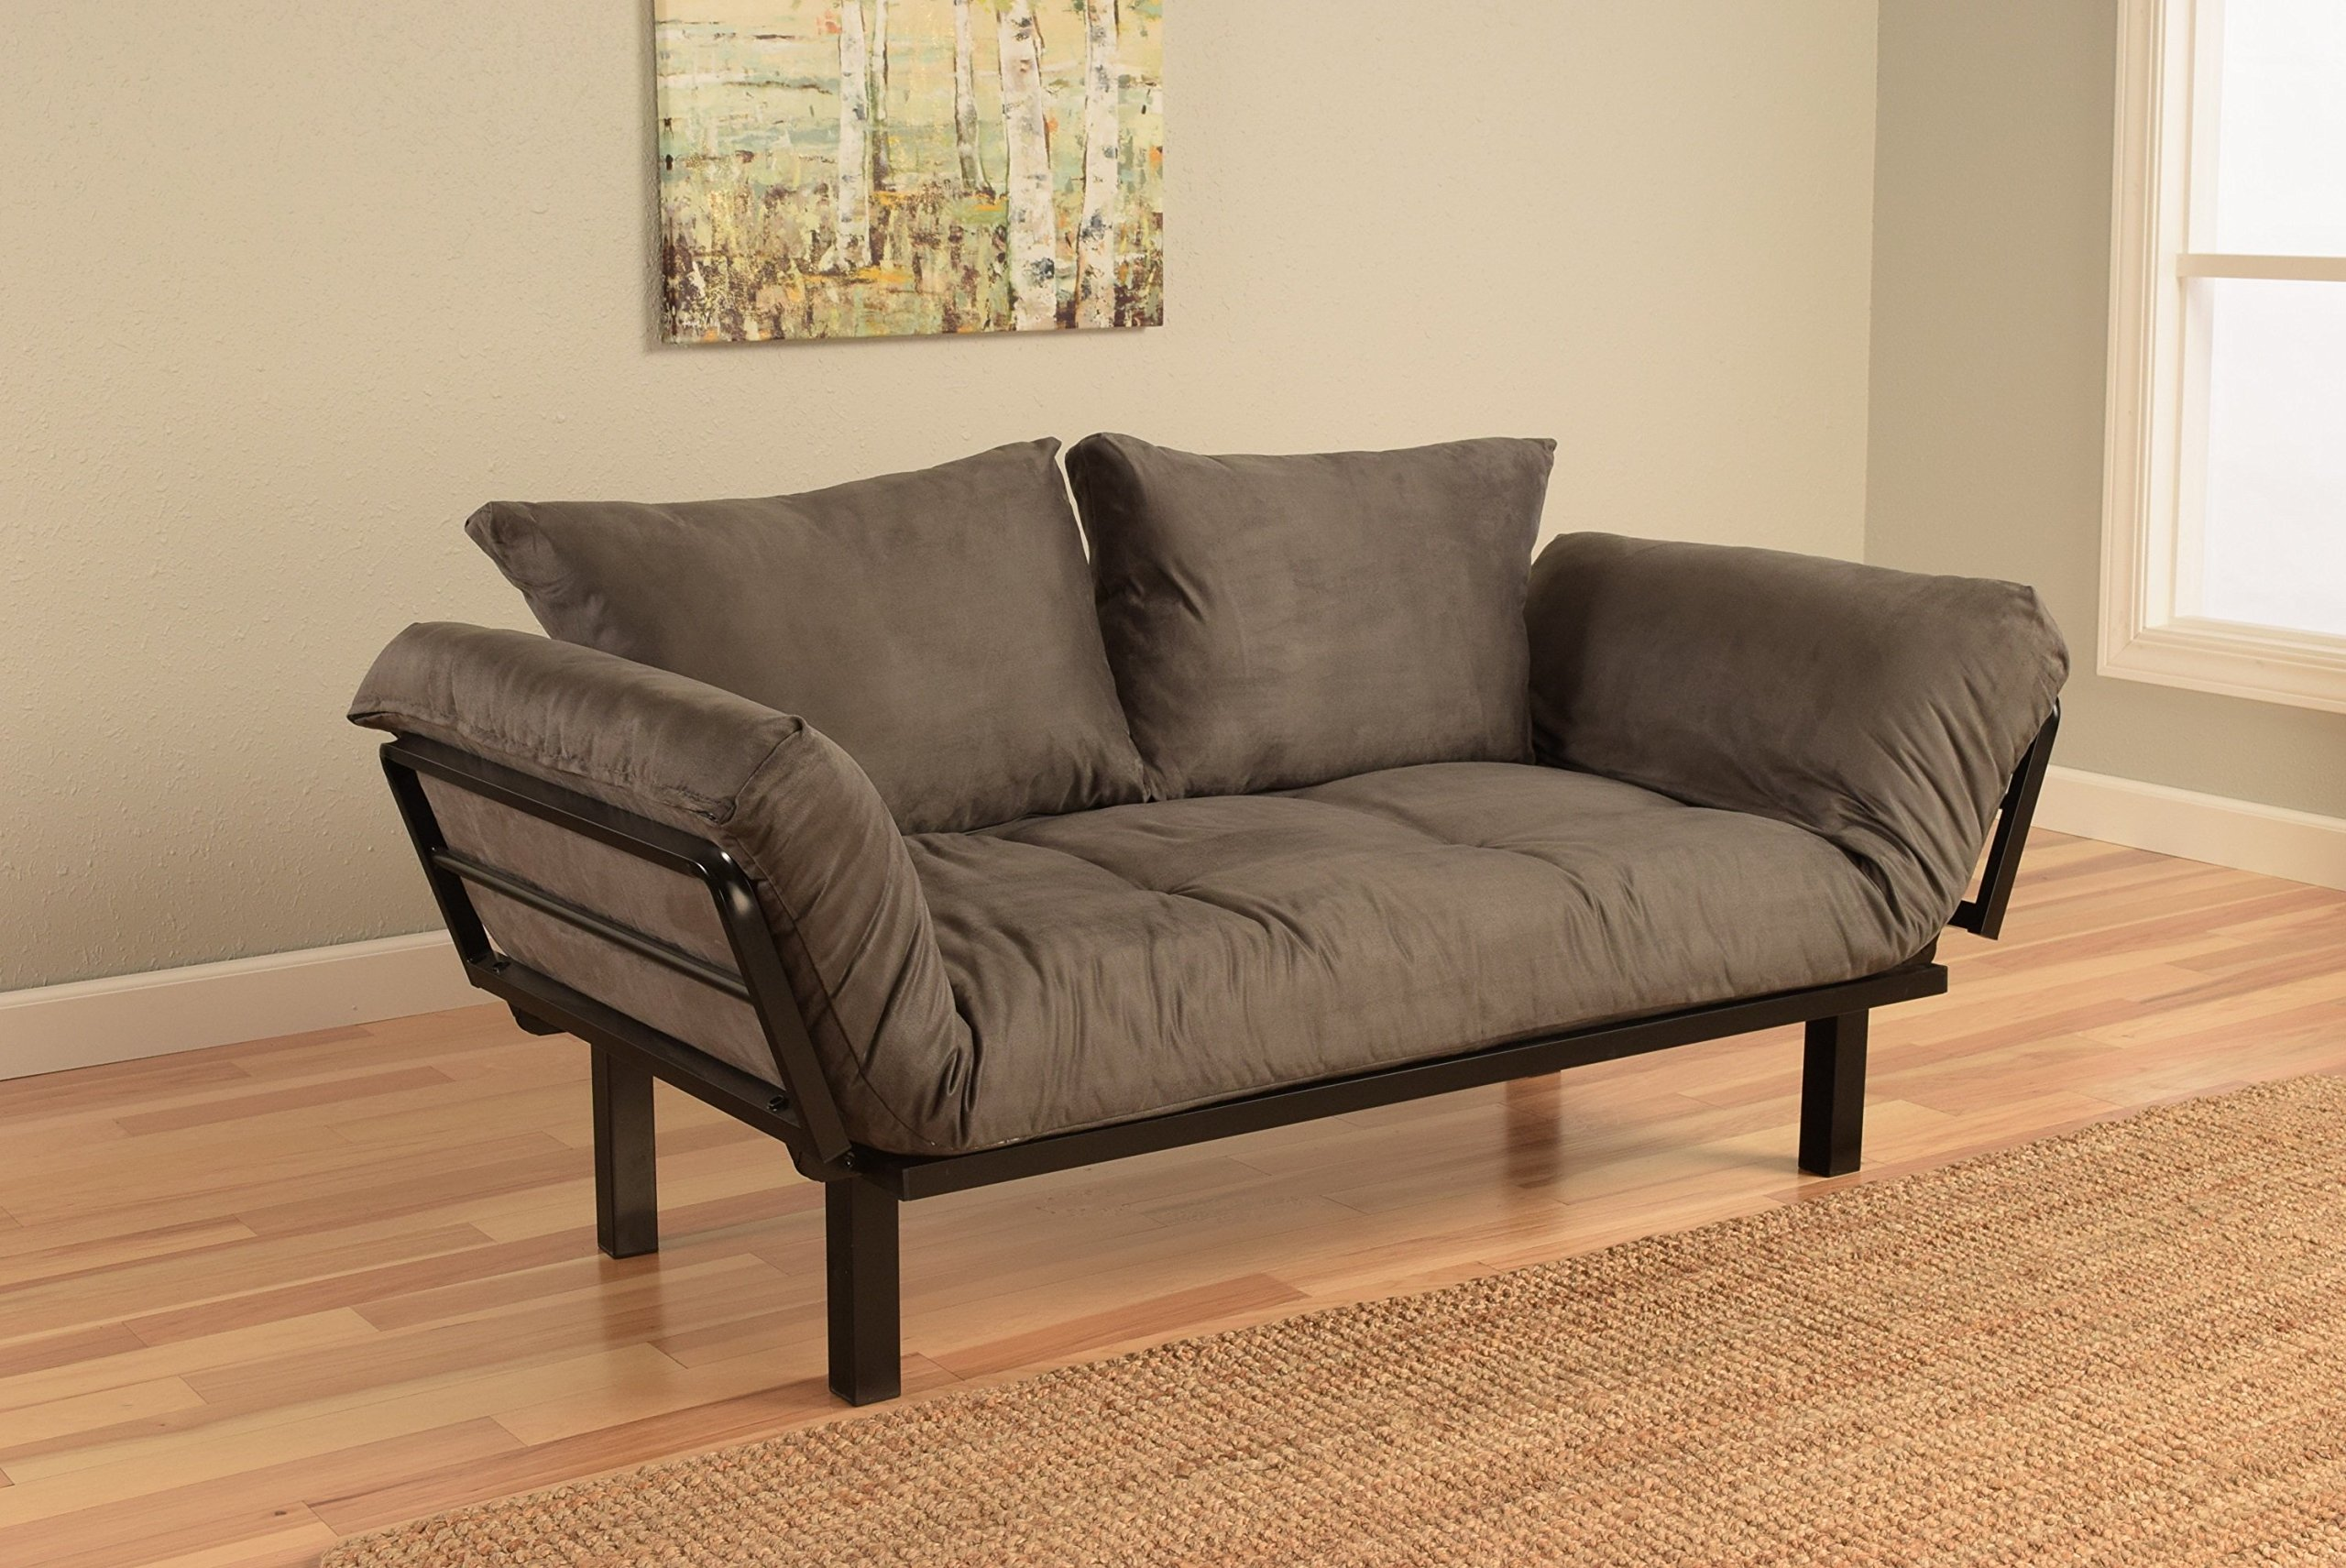 Best Rated in Futons & Helpful Customer Reviews Amazon